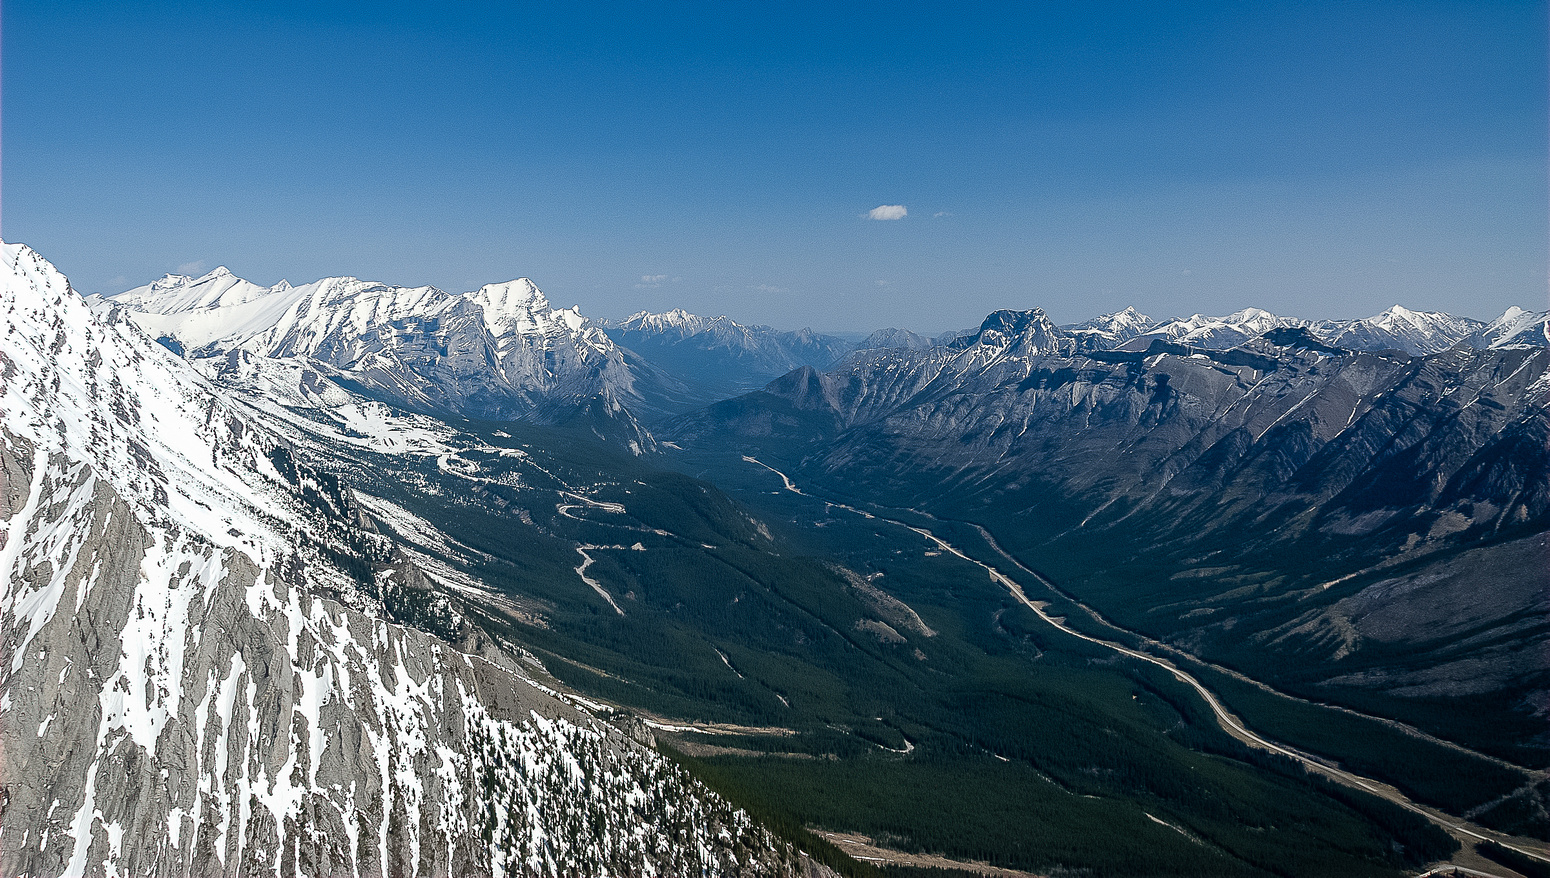 Great views up hwy 40 towards Kananaskis Village from the col.